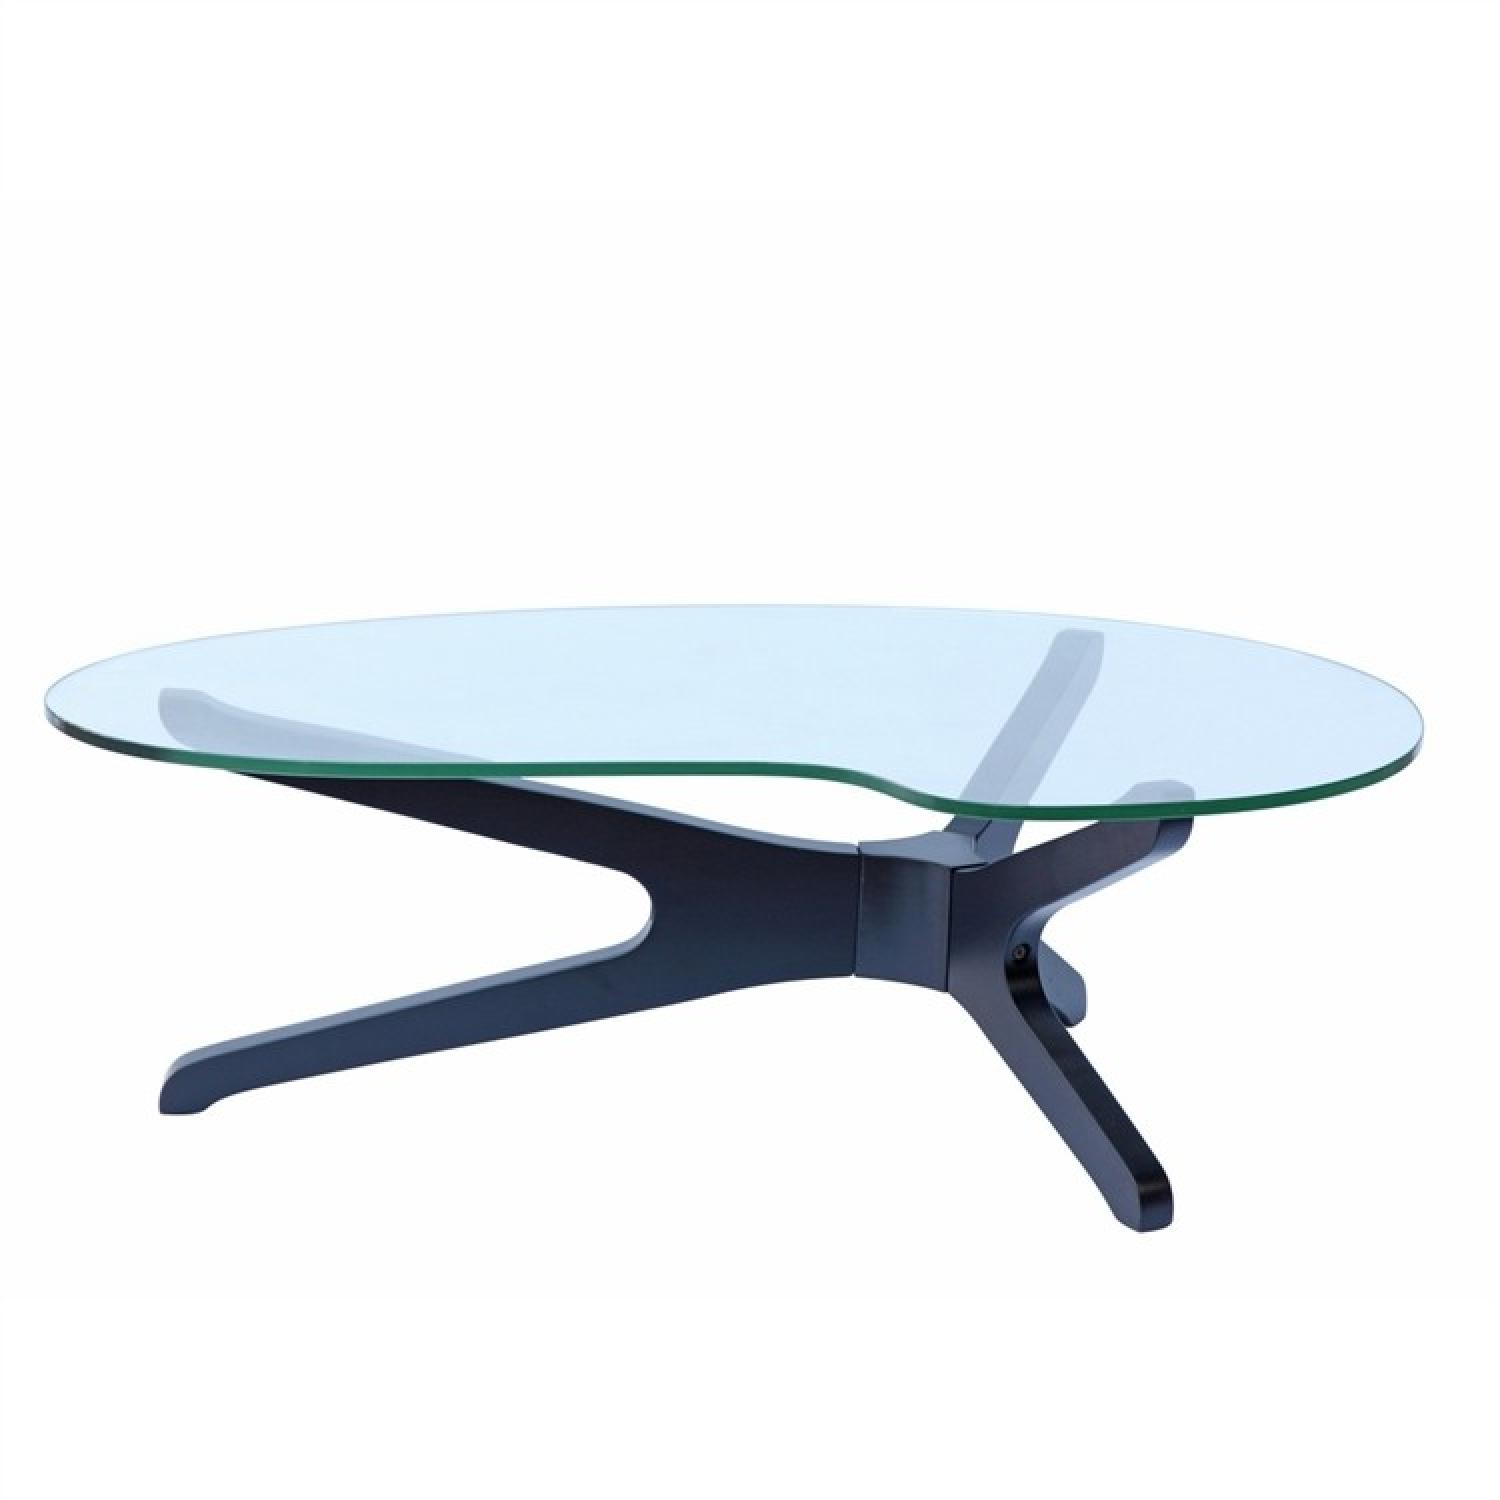 Modern Coffee Table w/ Irregularly Curved Tempered Glass Top & Black Wood Base